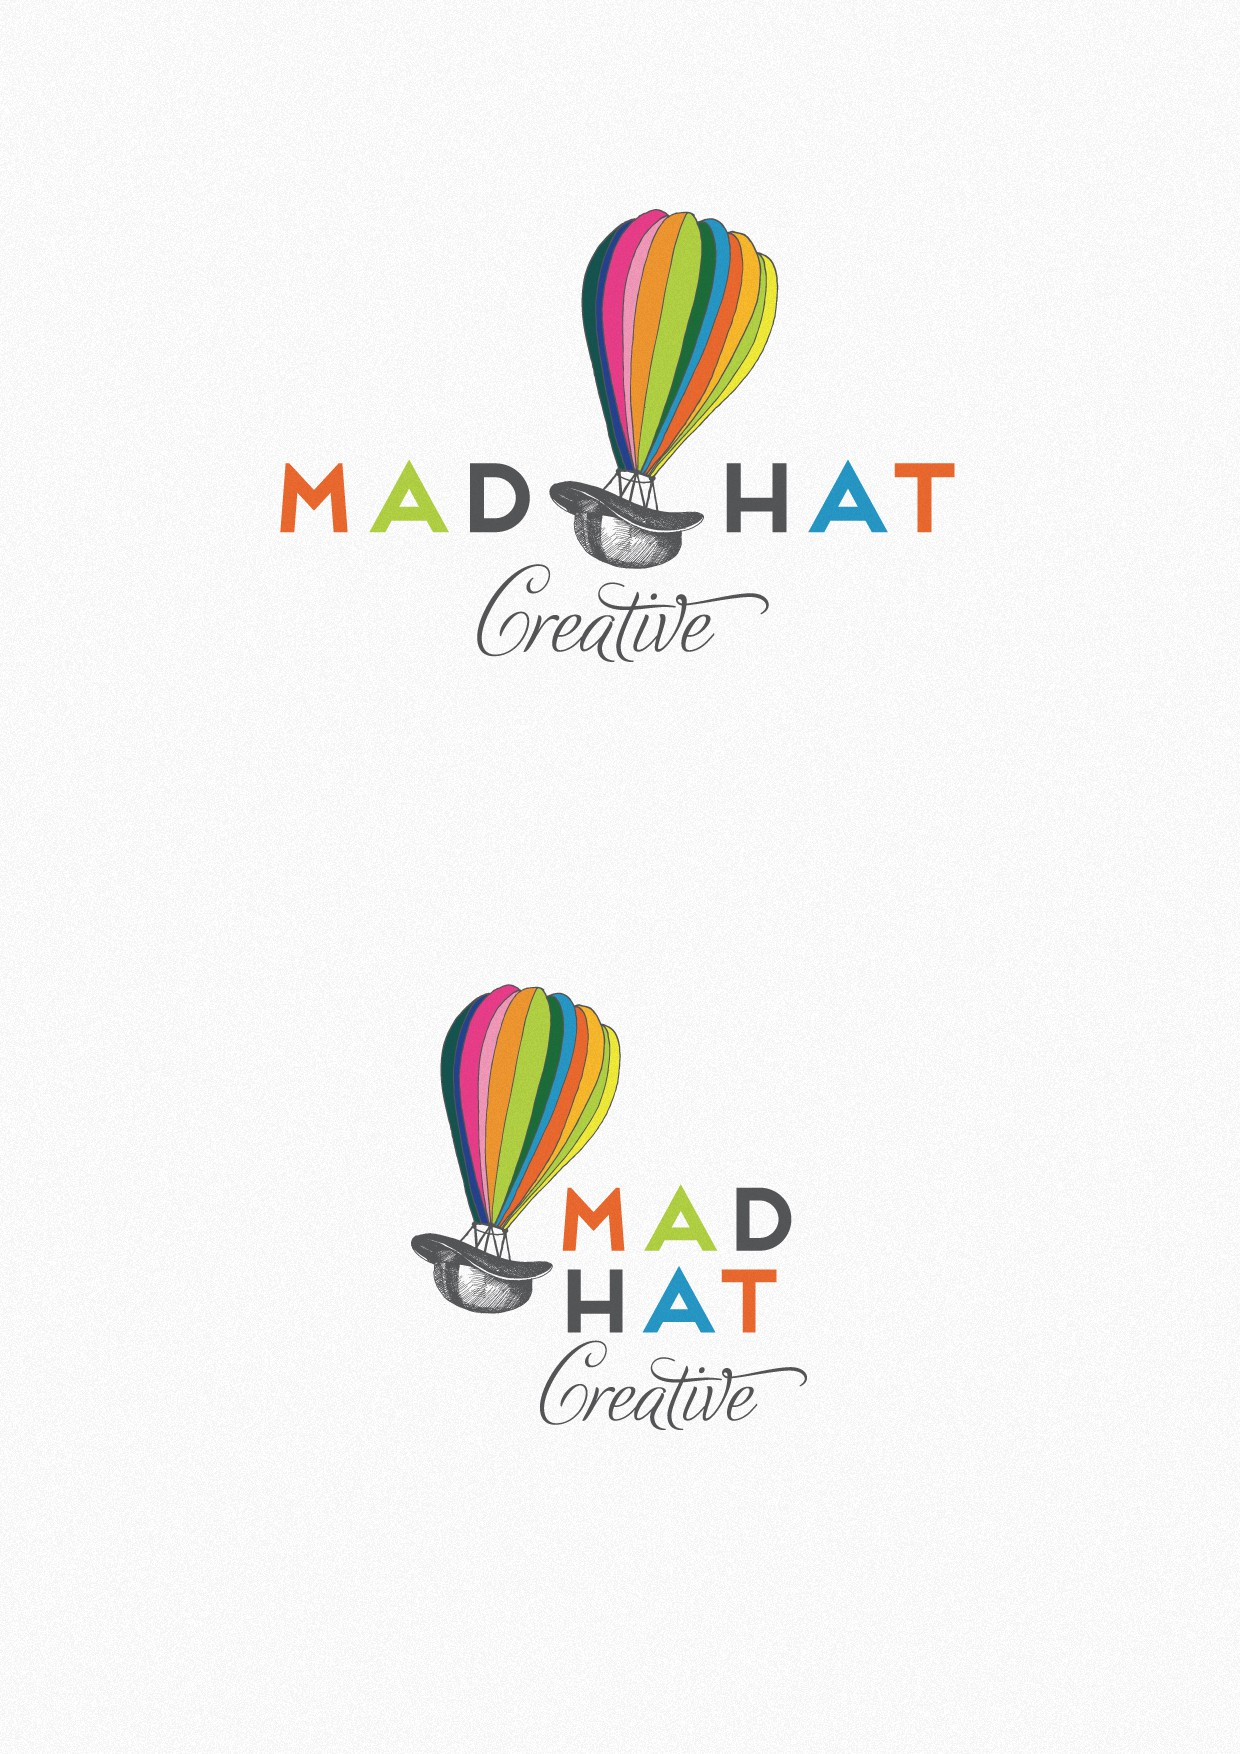 Clever & Bold logo needed for mainstream TV/Film production company